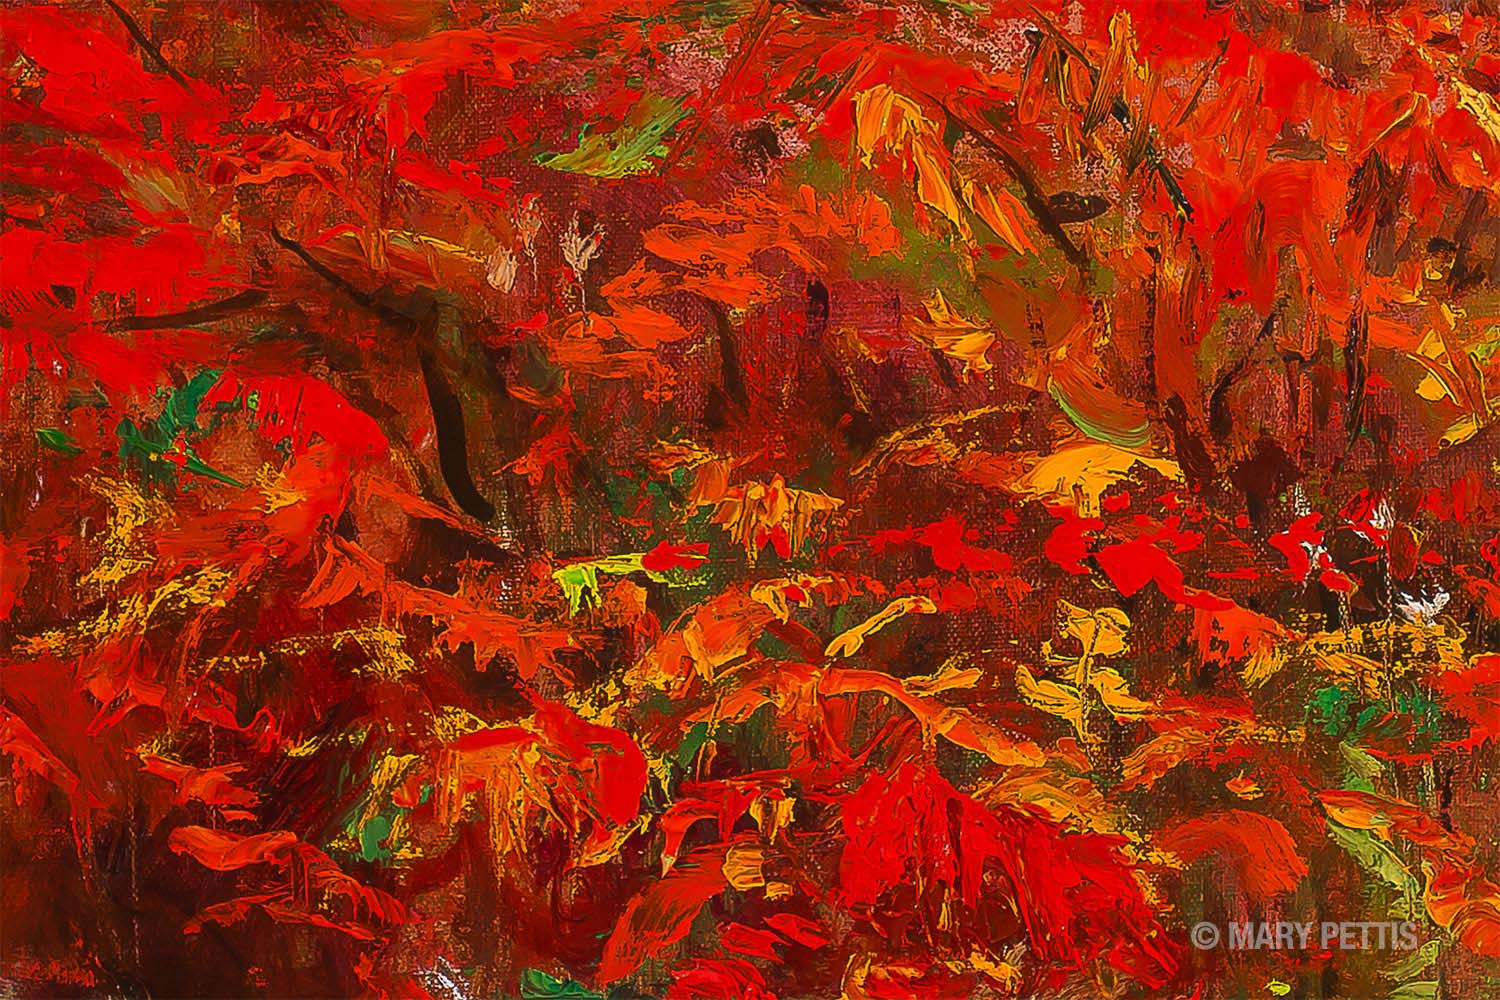 Oil Painting Photography - Documentation Photography - Sumac Detail